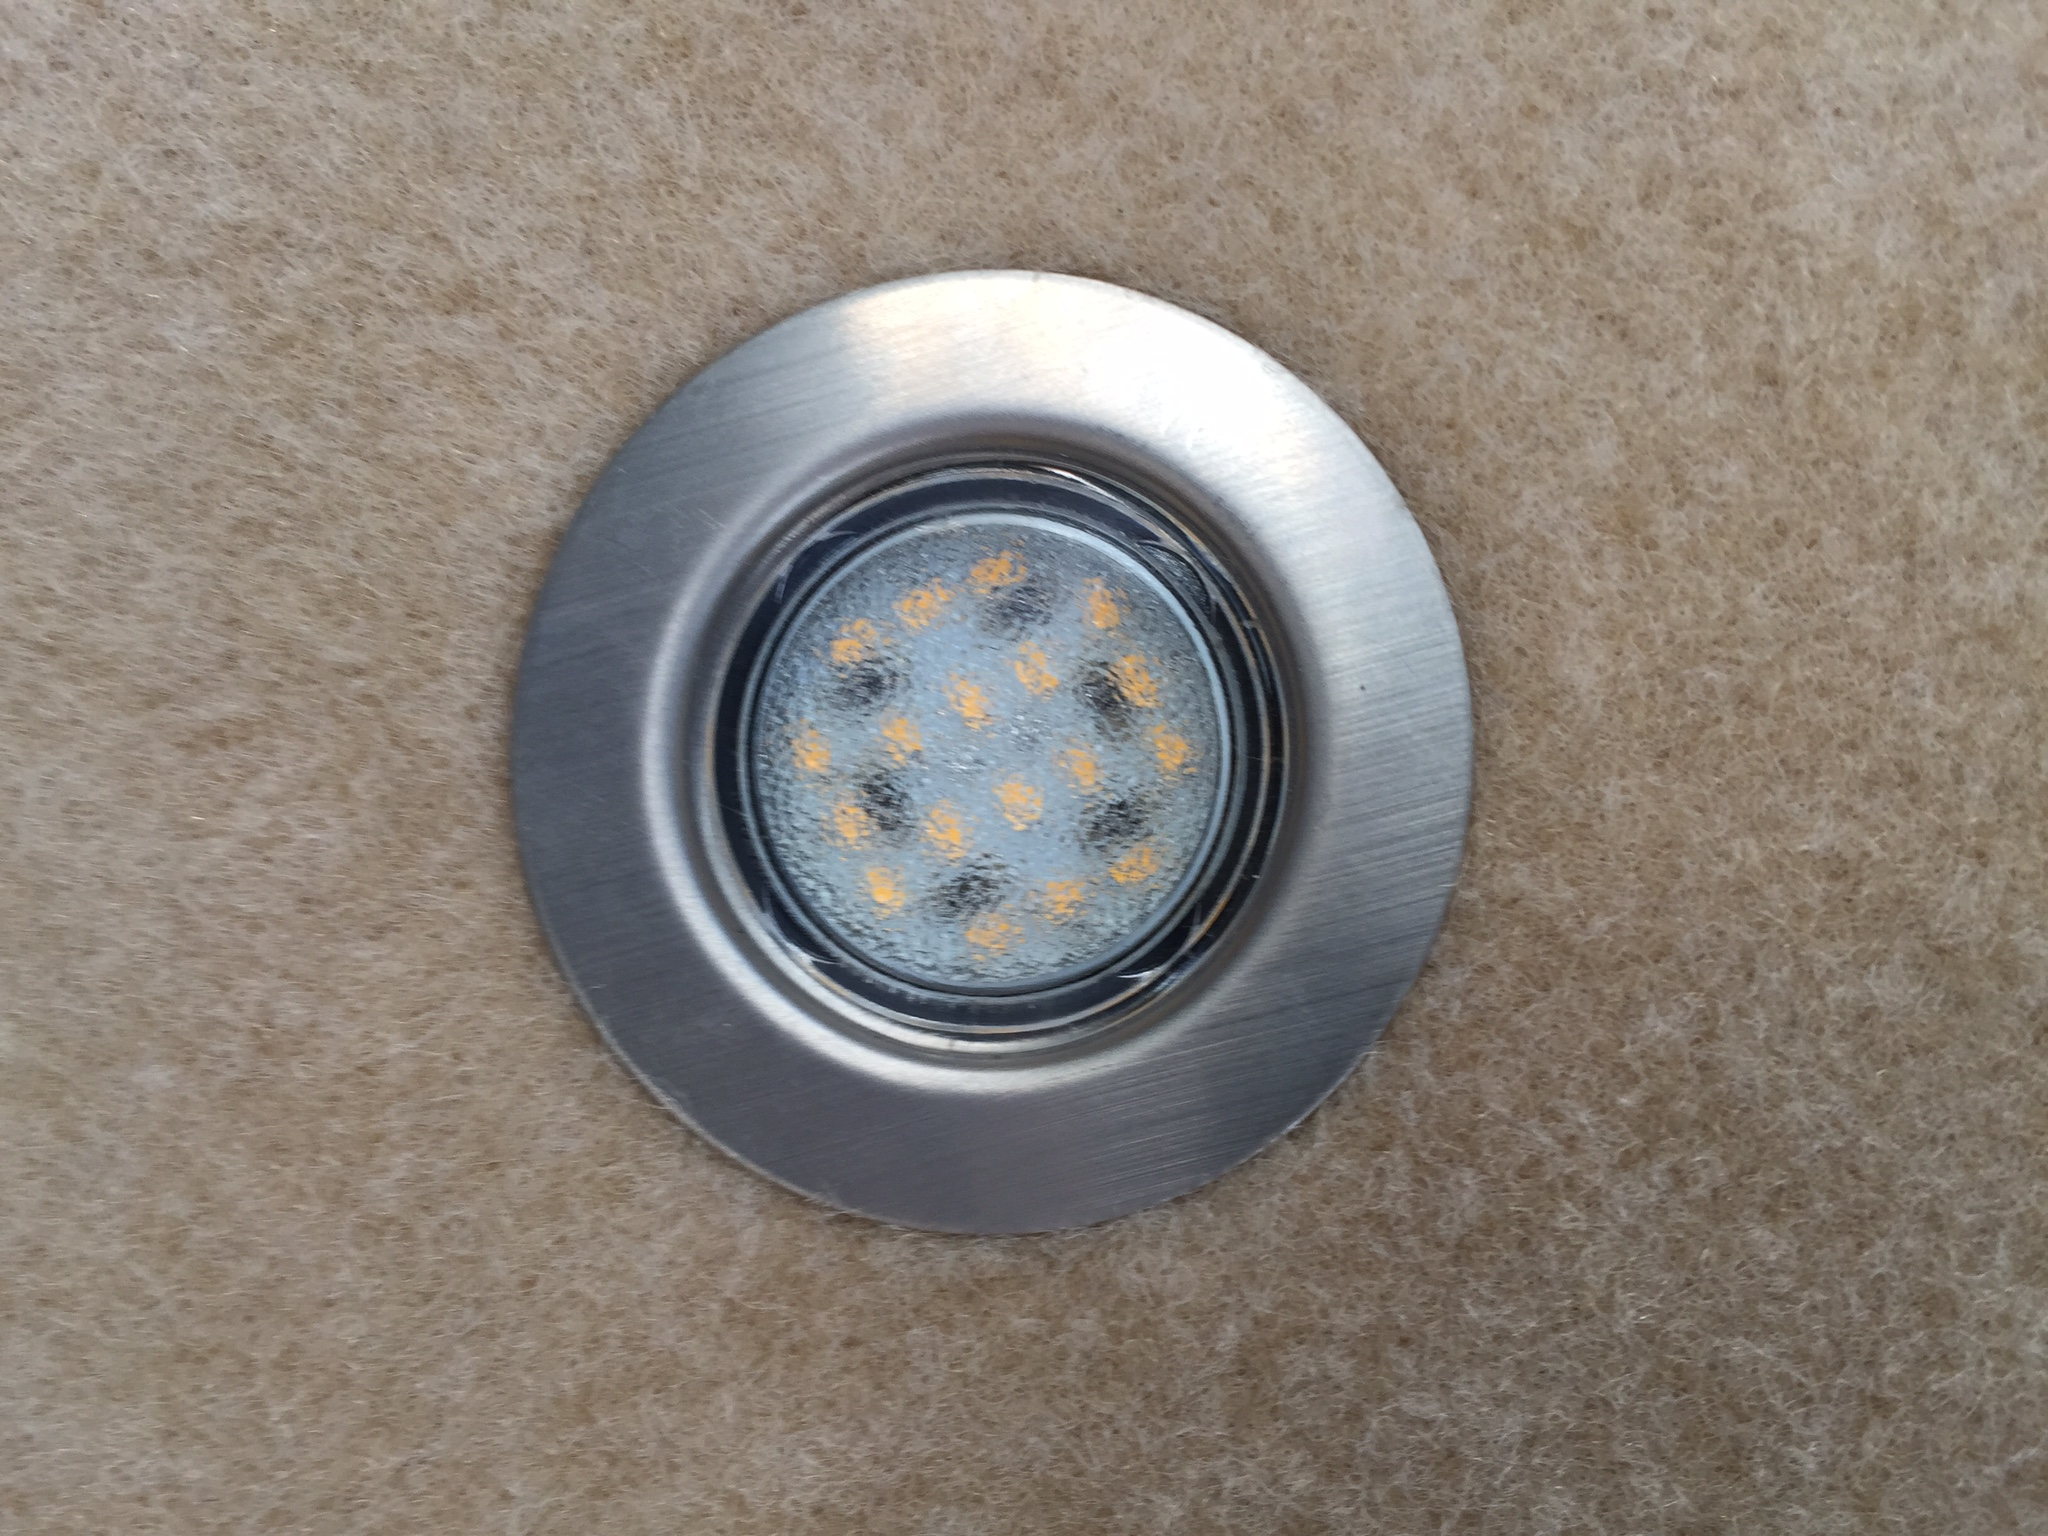 Vega 48 ceiling light